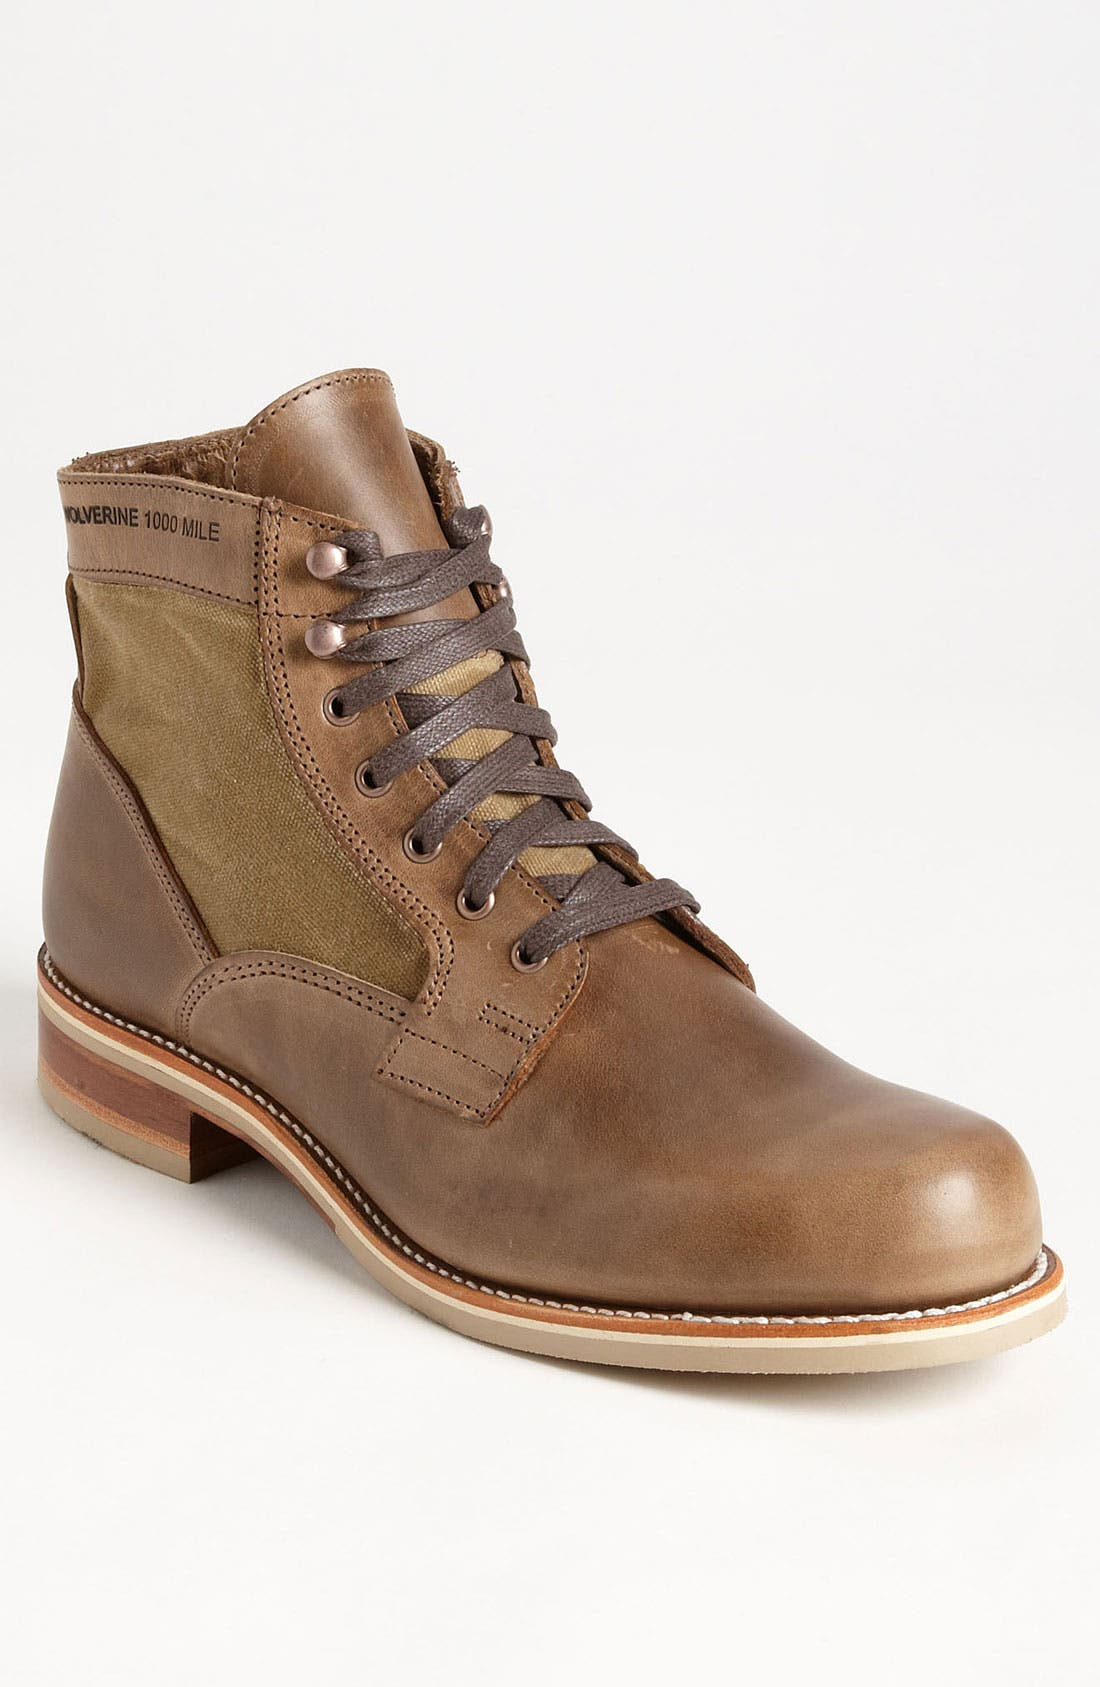 Main Image - Wolverine '1000 Mile - Whitepine' Boot